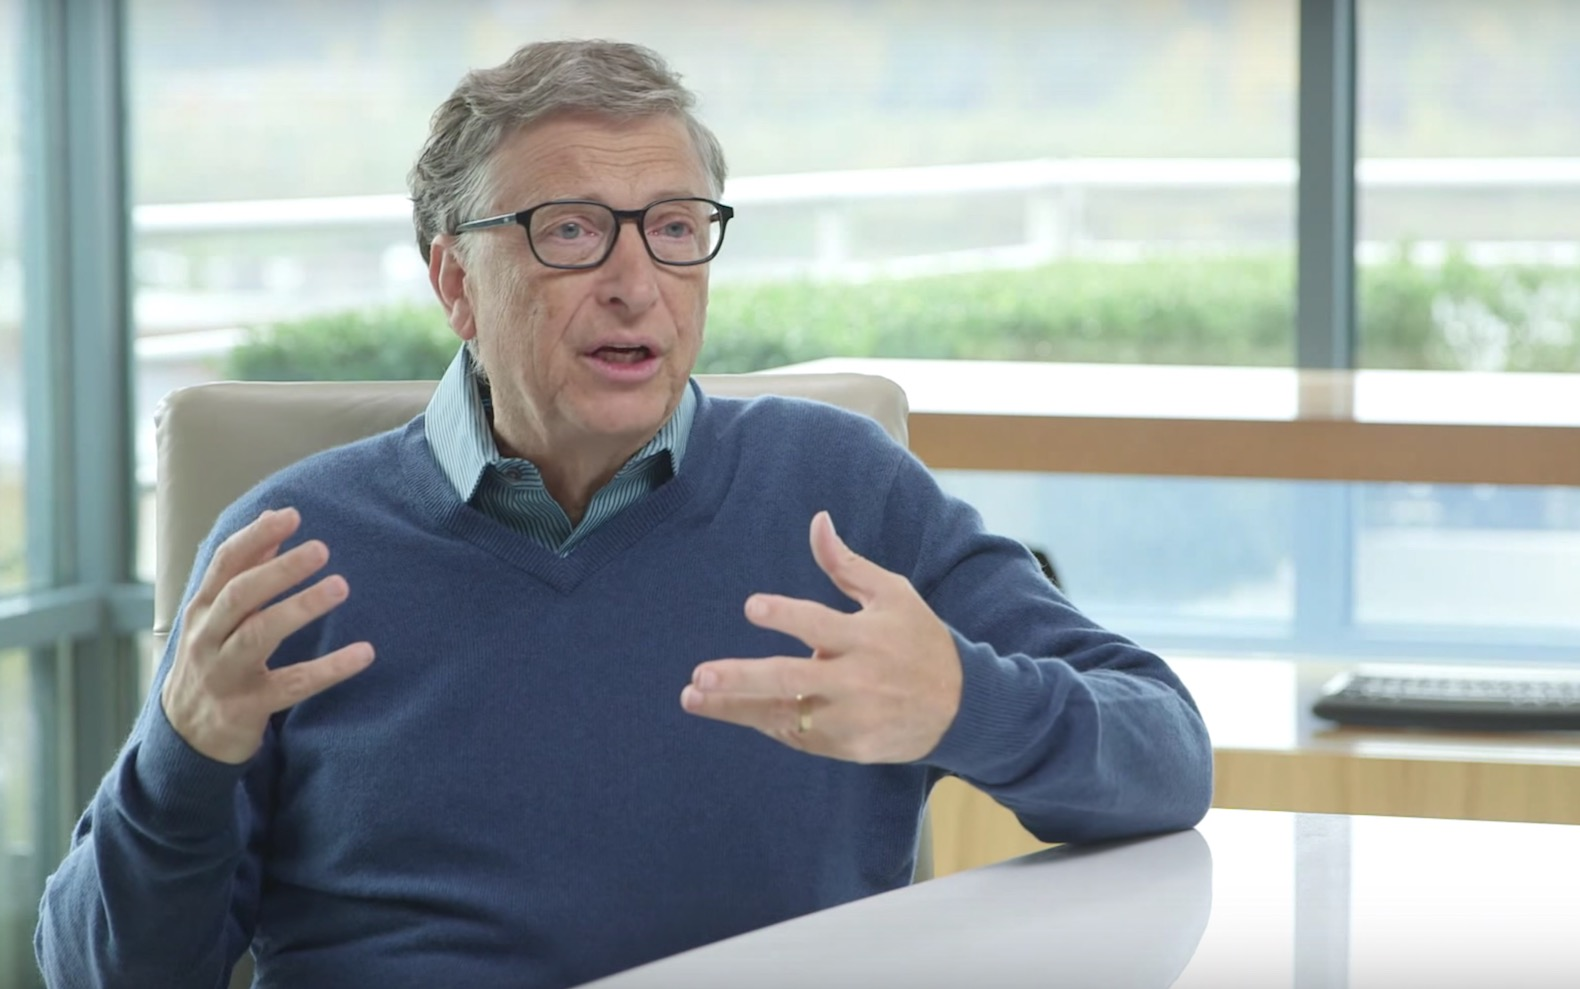 Aadhaar doesn't pose any privacy issue and is worth emulating: Bill Gates